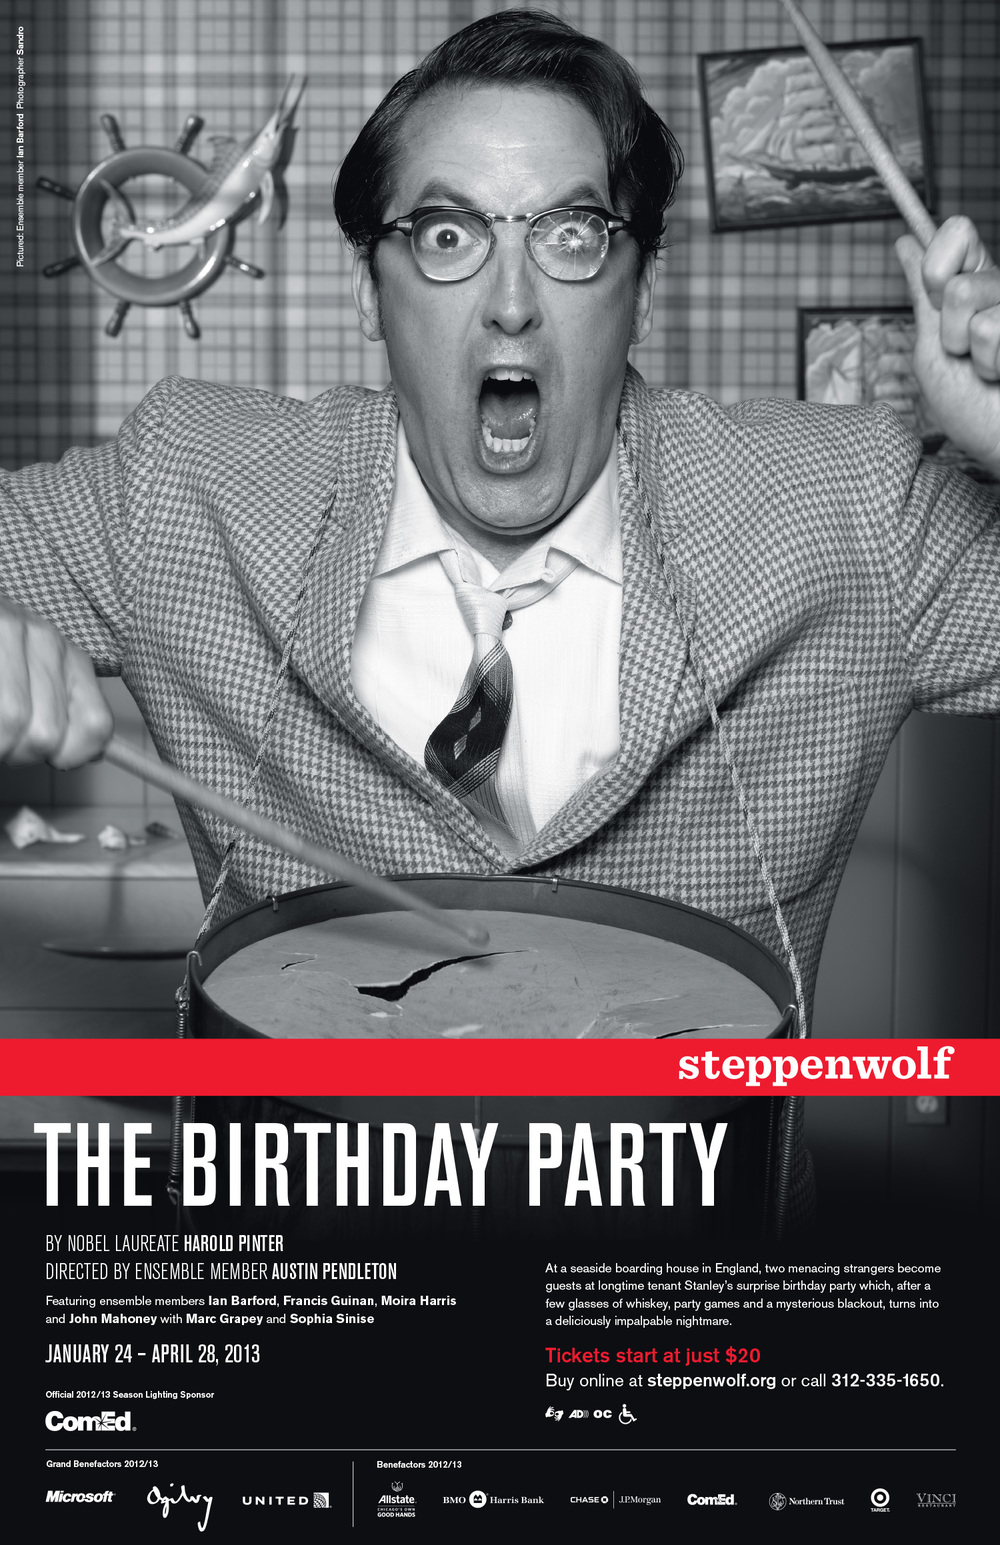 Steppenwolf_BirthdayParty_poster.jpg